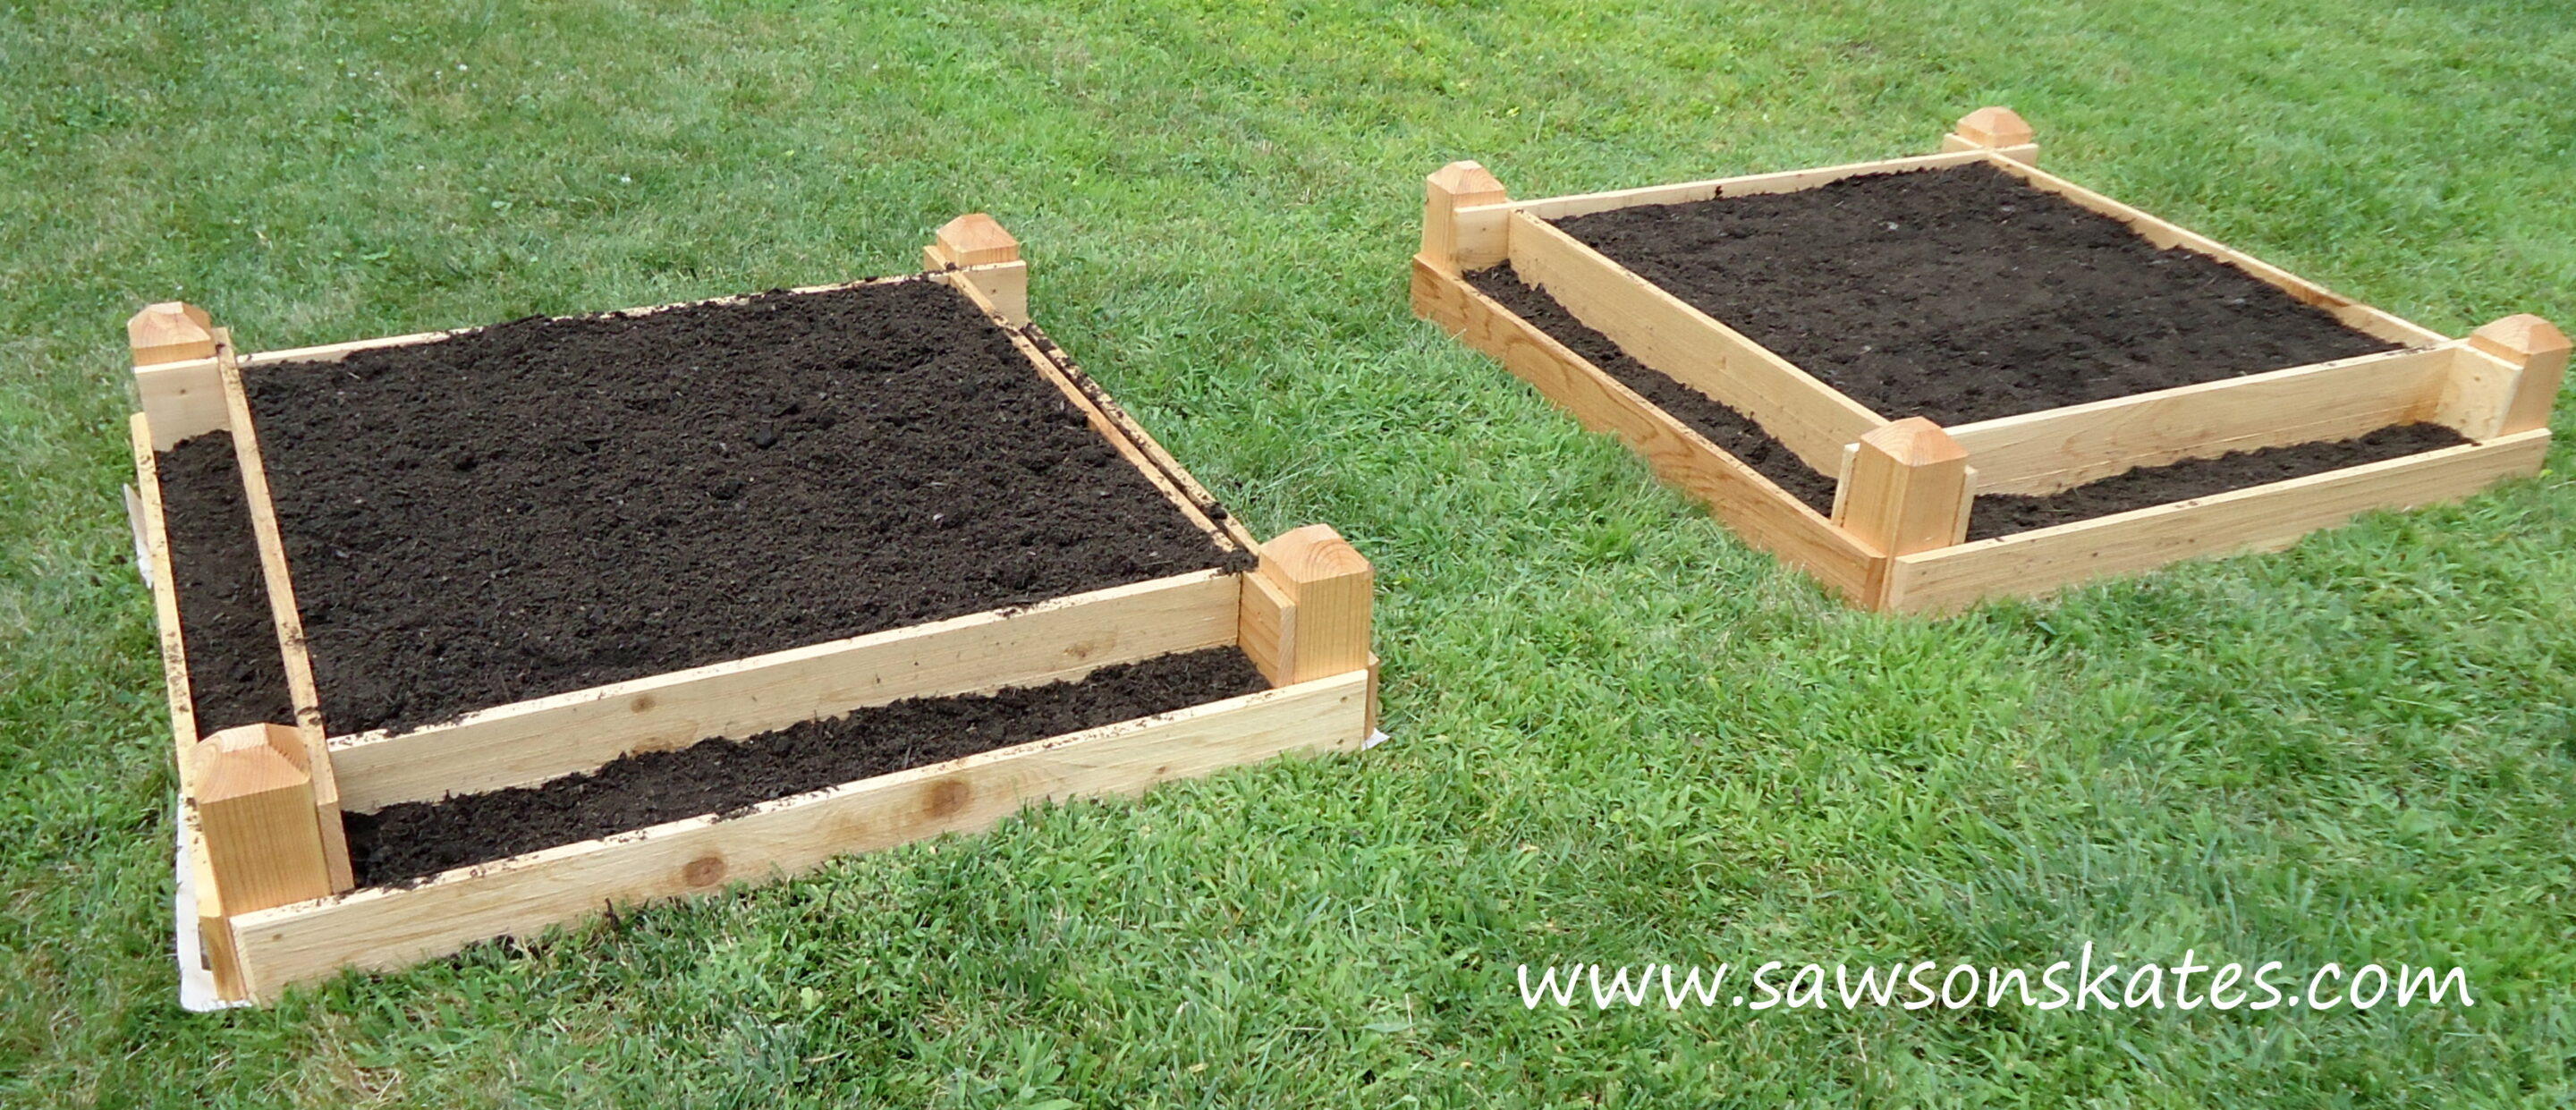 How to make a diy raised garden bed for Diy patio bed